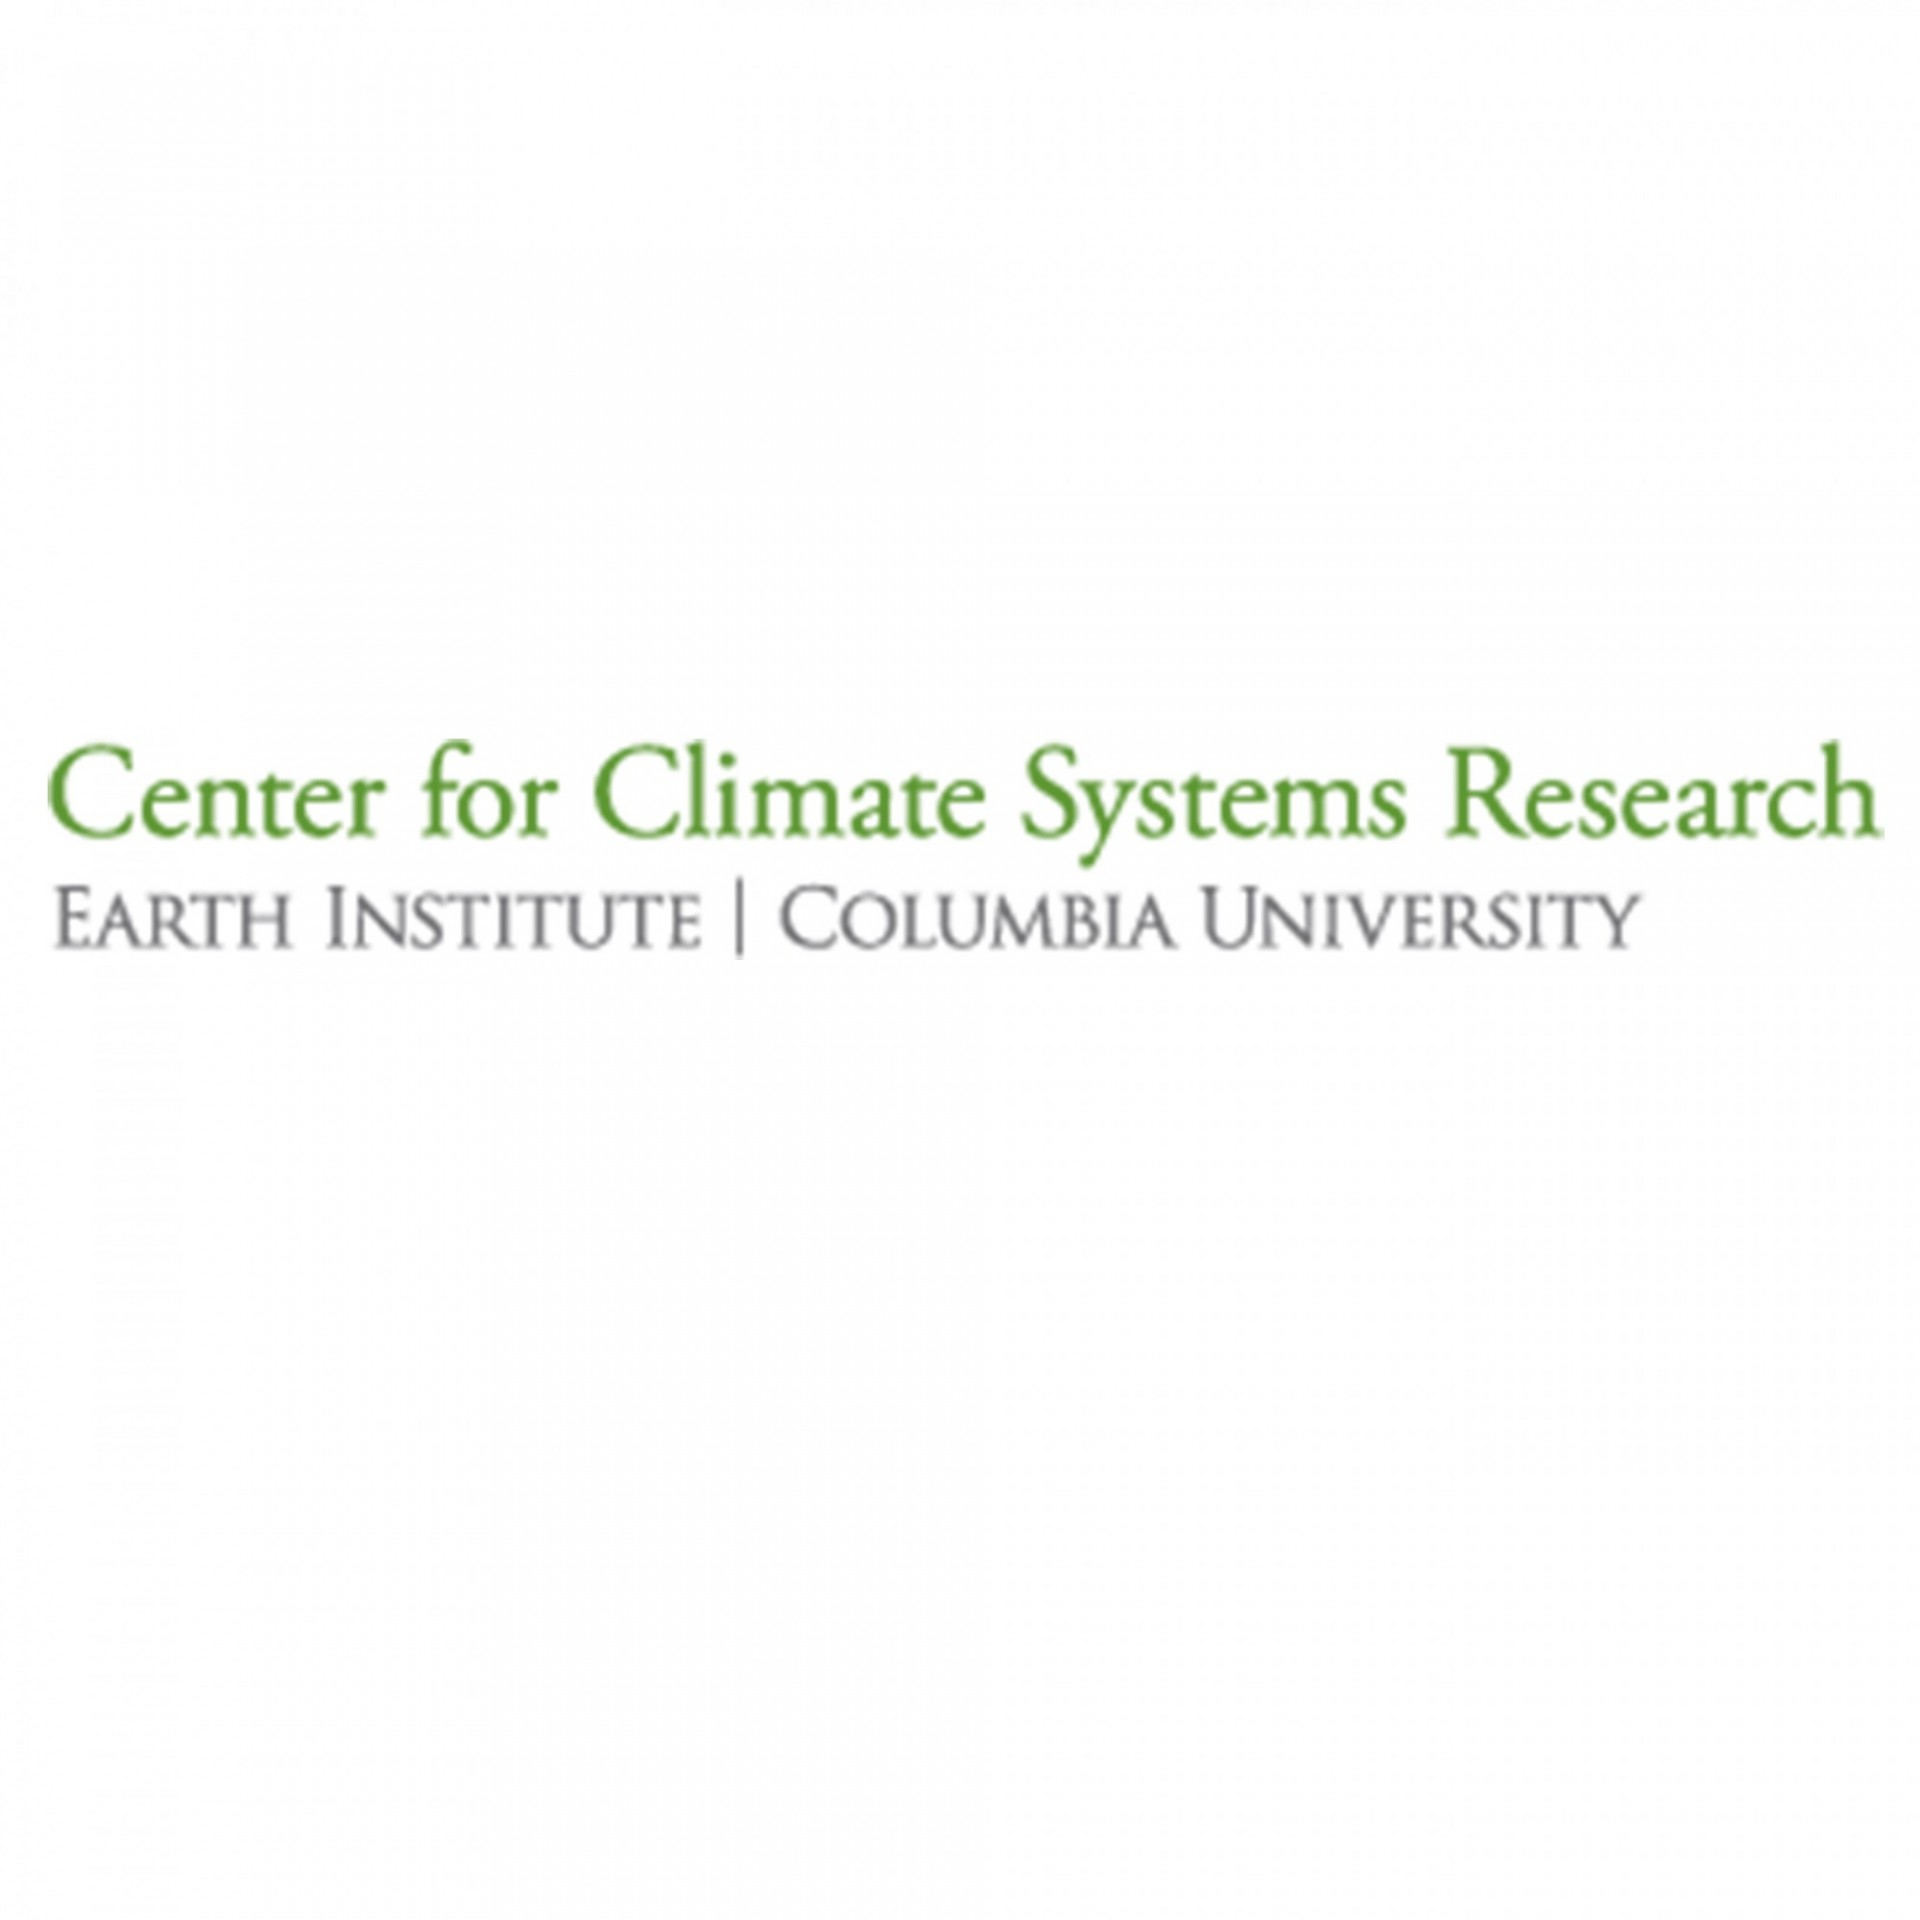 Center for Climate Systems Research